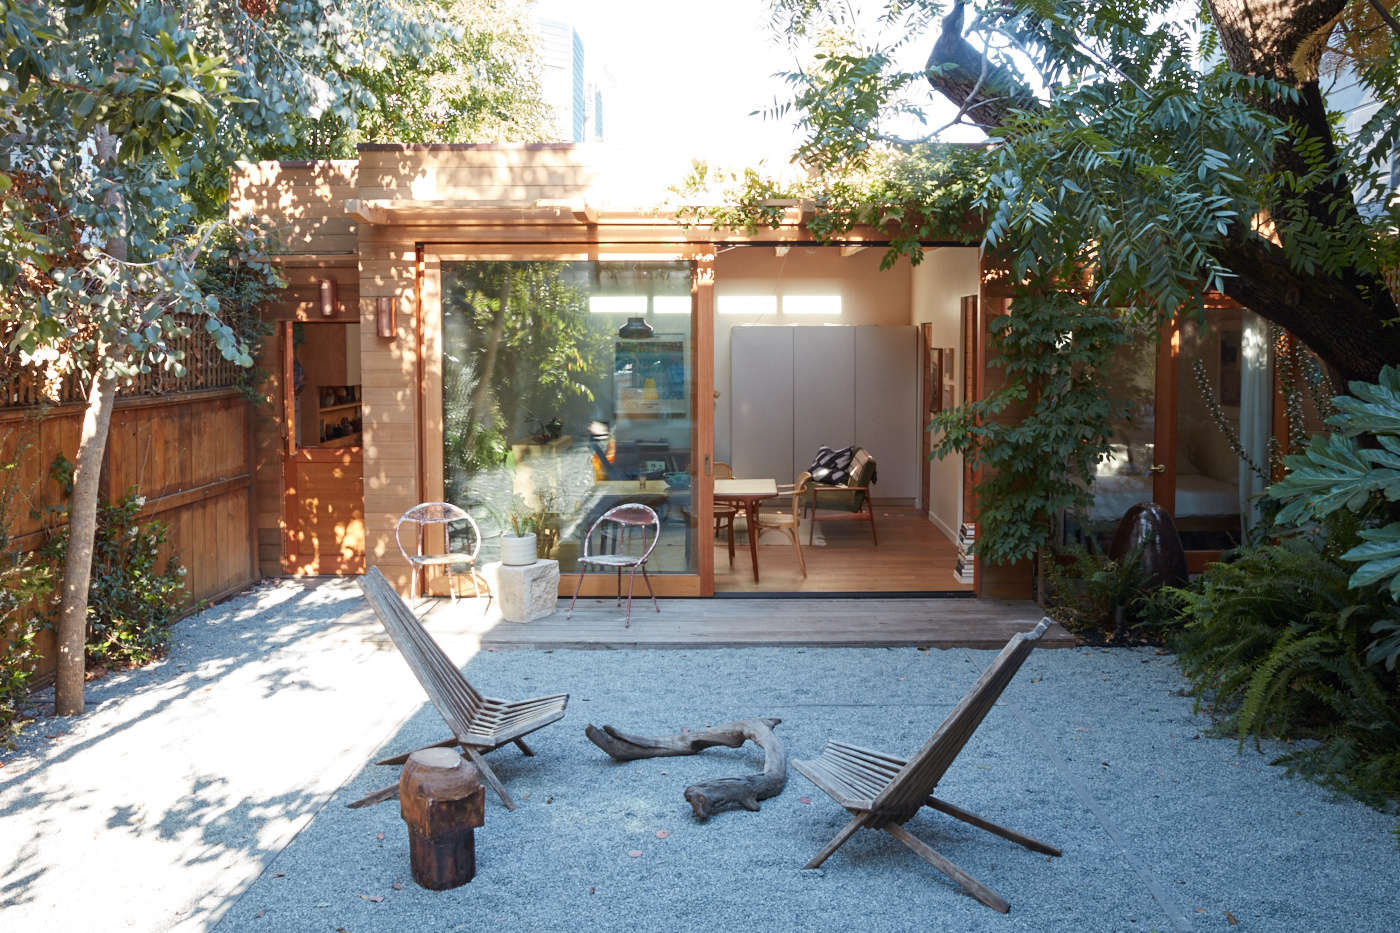 This remarkable transformation actually involved a dilapidated shed (and not a garage) but its design lessons can be easily applied to a garage conversion as well. See Before & After: A Derelict Shed in San Francisco Transformed Into an Artist's Studio.